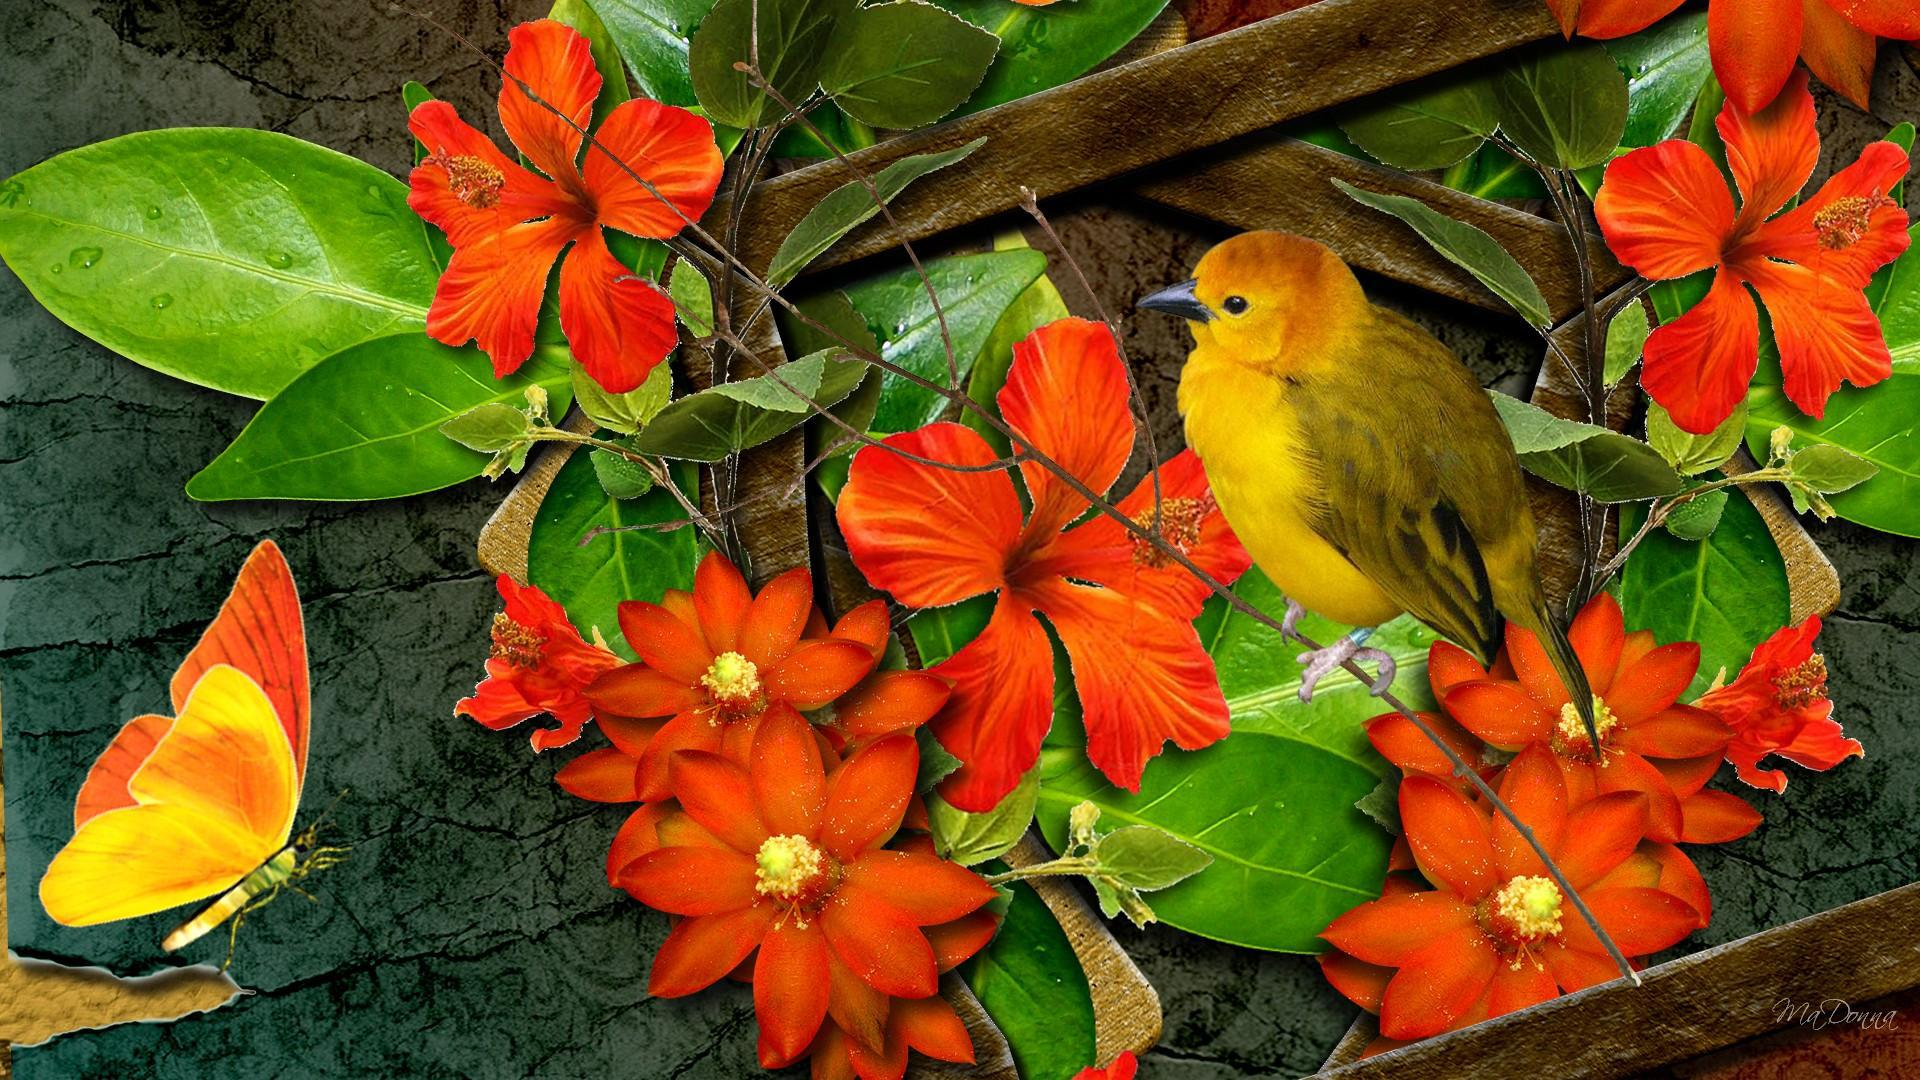 Beautiful Pictures Of Flowers And Butterflies Birds Bright Flowers Bird Butterfly Hd Desktop Wallpaper